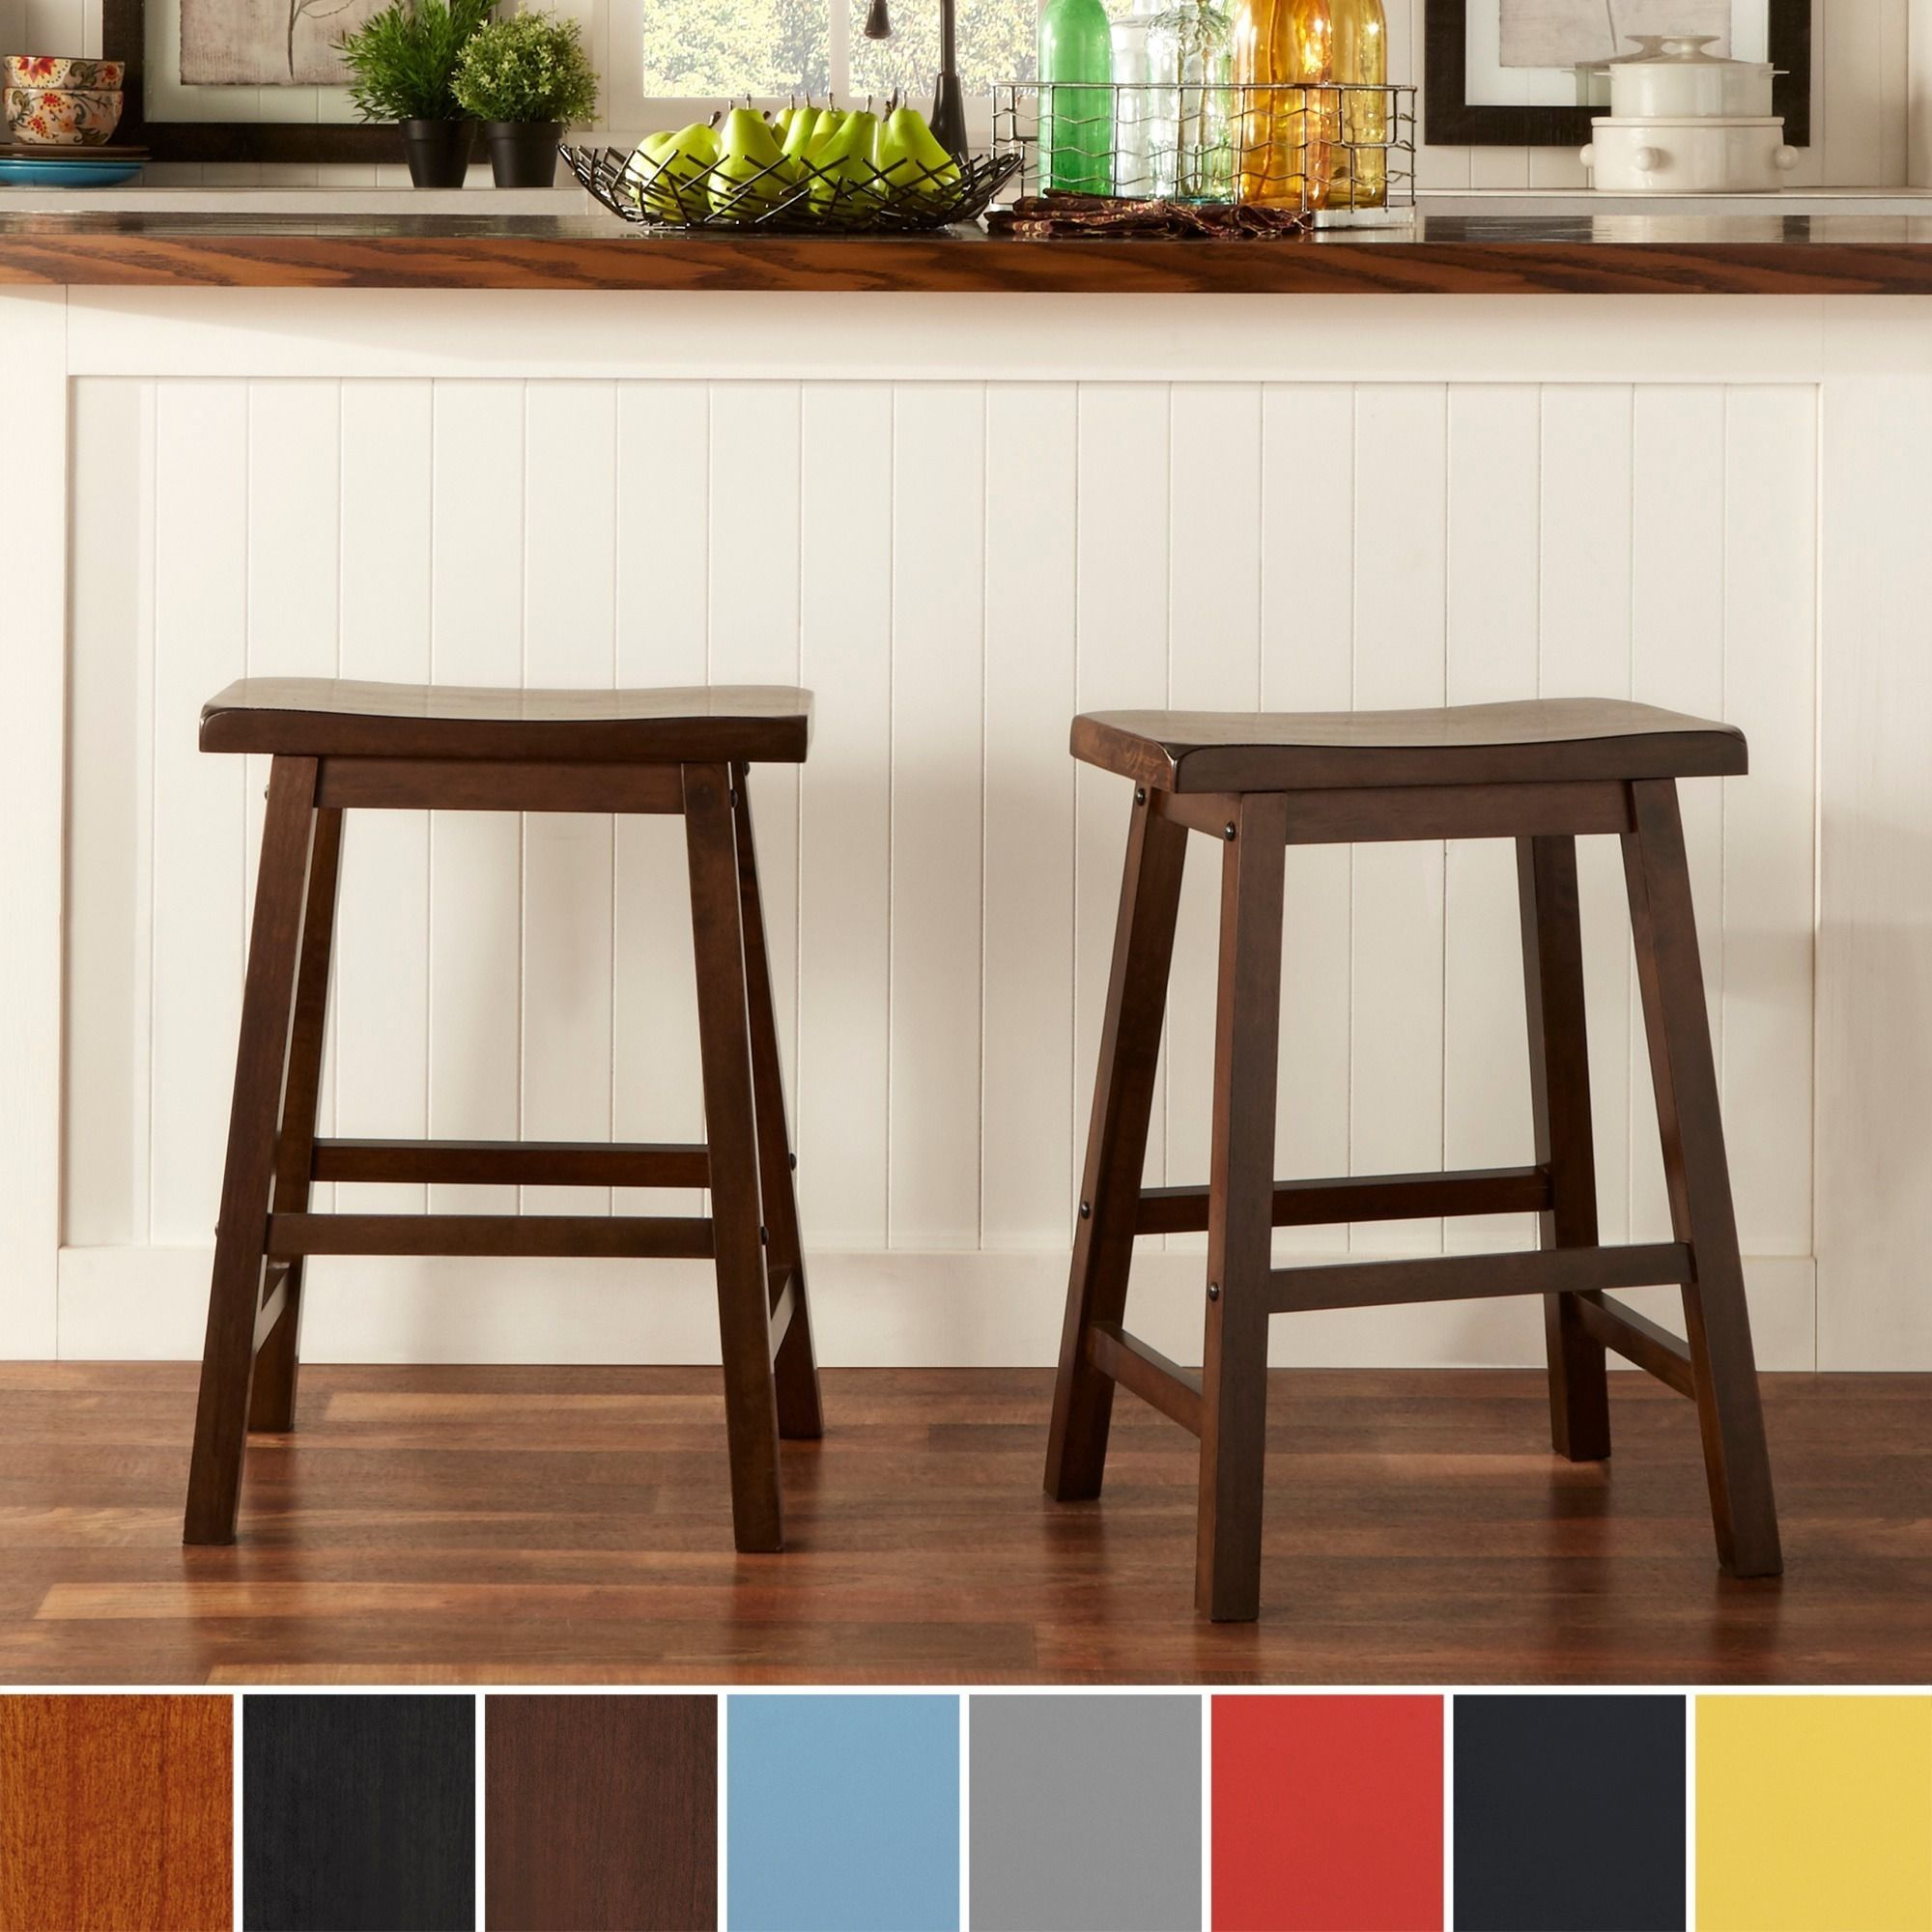 Inspirational 24 Inch Saddle Bar Stools